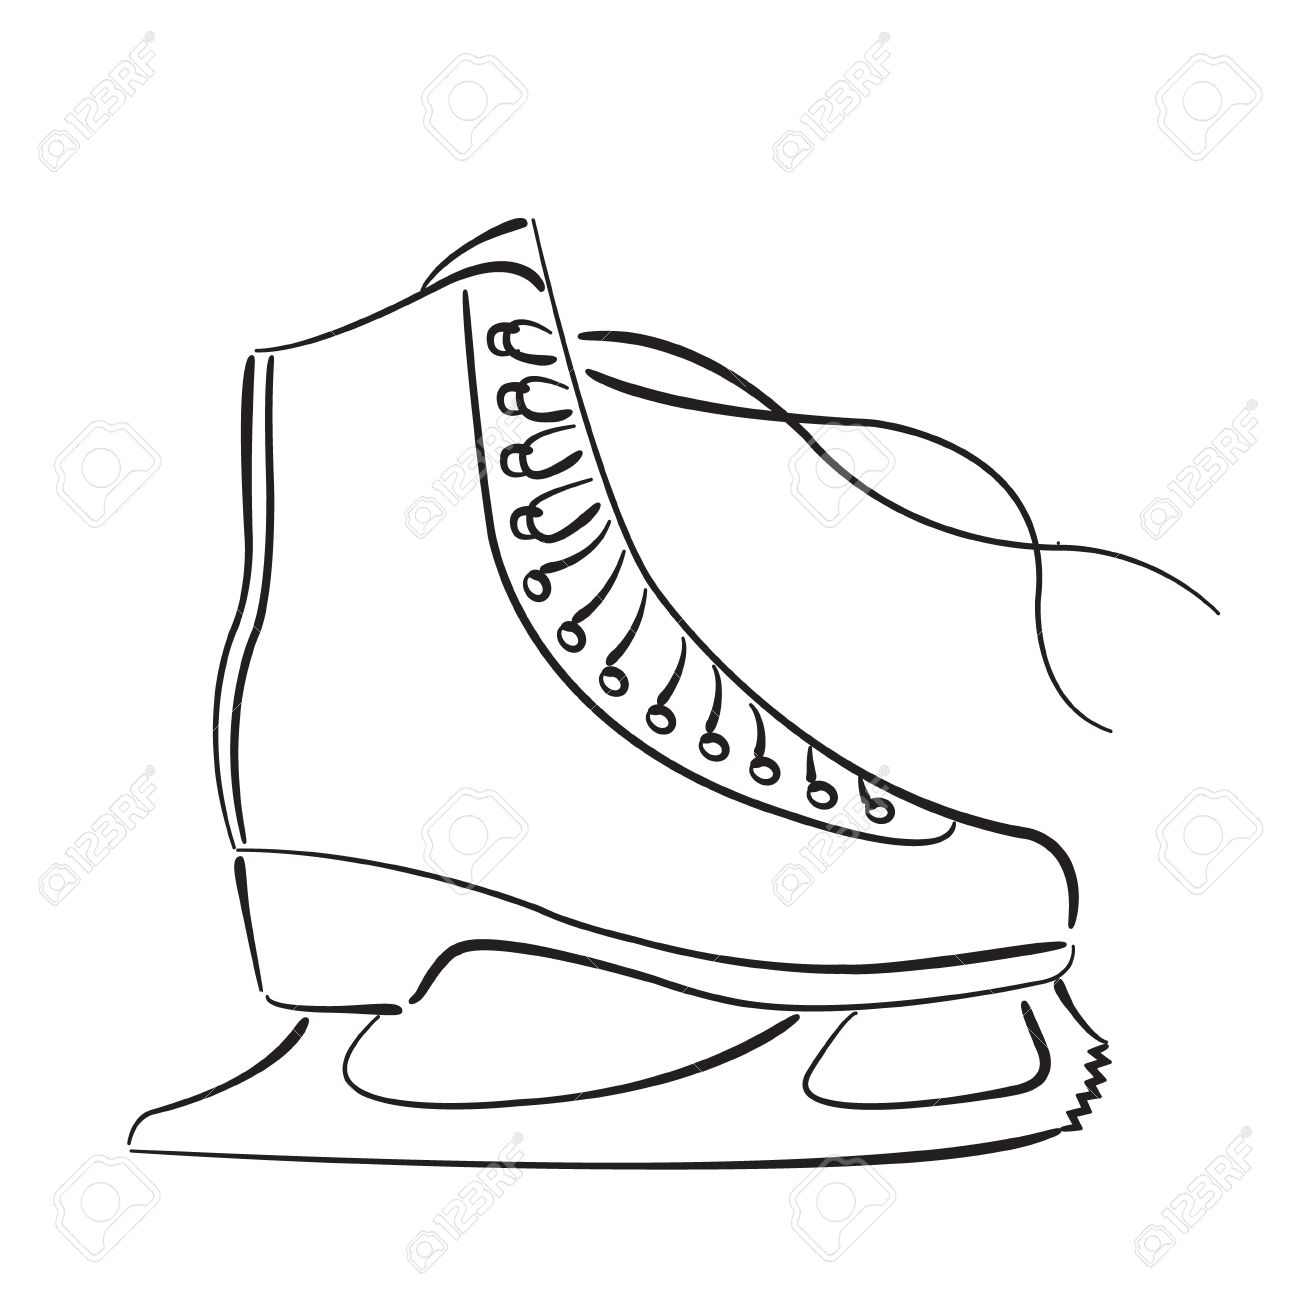 1300x1300 Elegant Sketched Ice Skates Isolated On White Background. Ice